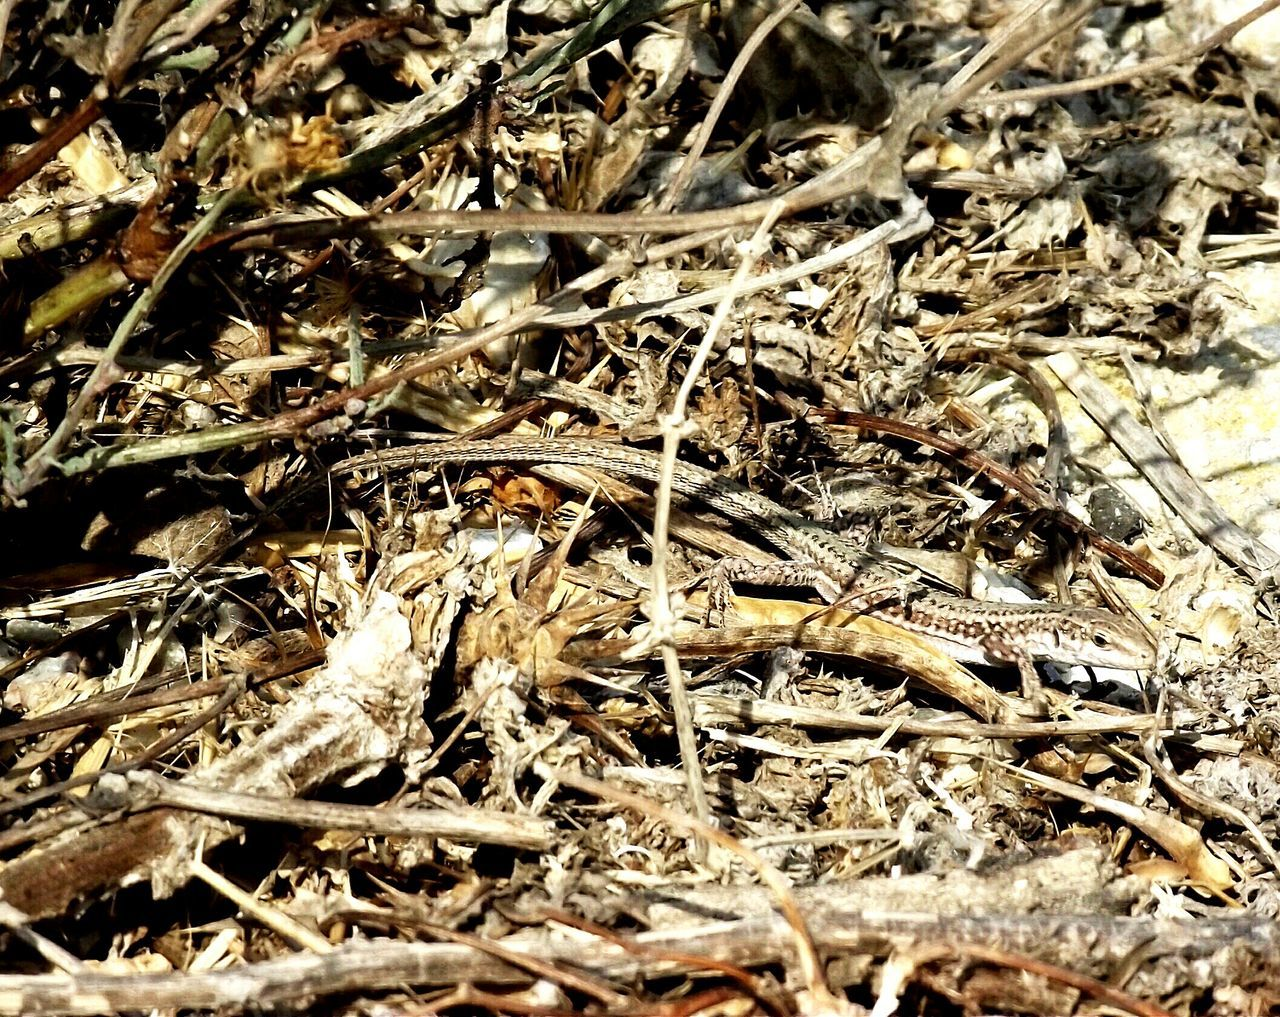 can you see the Lizard Better Look Twice Wildlife & Nature Eyem Nature Lovers  Eyem Best Shots Nature_collection Eyeem Lizards Lizard Nature .Nature On Your Doorstep Mobile Photography Nature_collection Wildlife Perfect Match